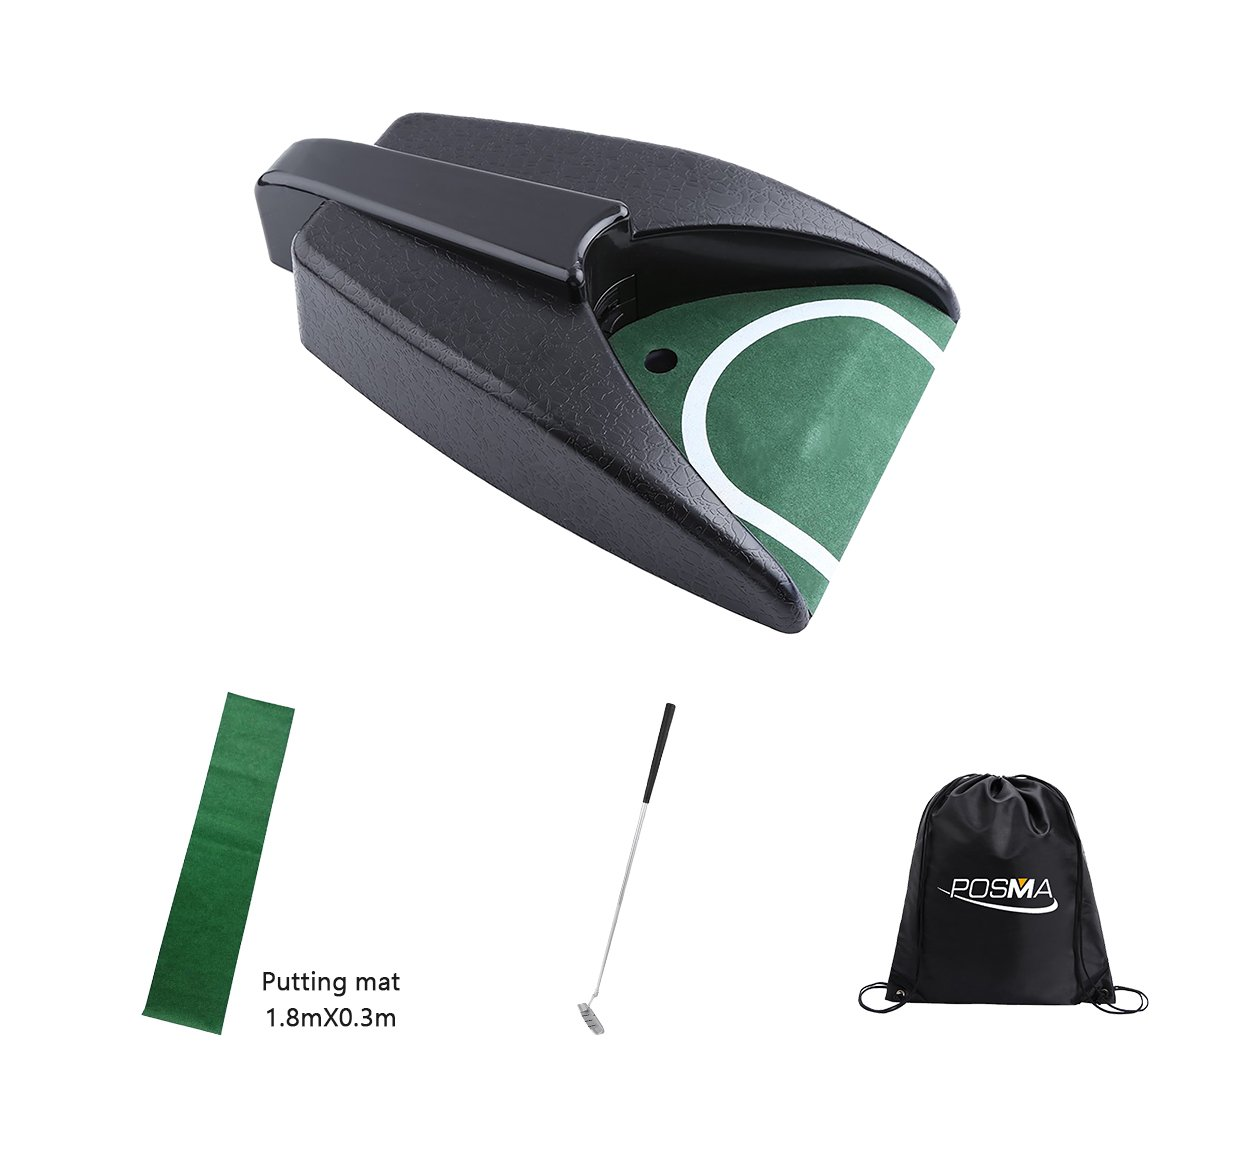 POSMA PG010F Practice Training Cup Golf Automatic Putting Cup Bundle Set with 1pc Putting Cup + 1.8m x 0.3m Putting Mat + 1 set of Detachable putter + Cinch Sack Bag